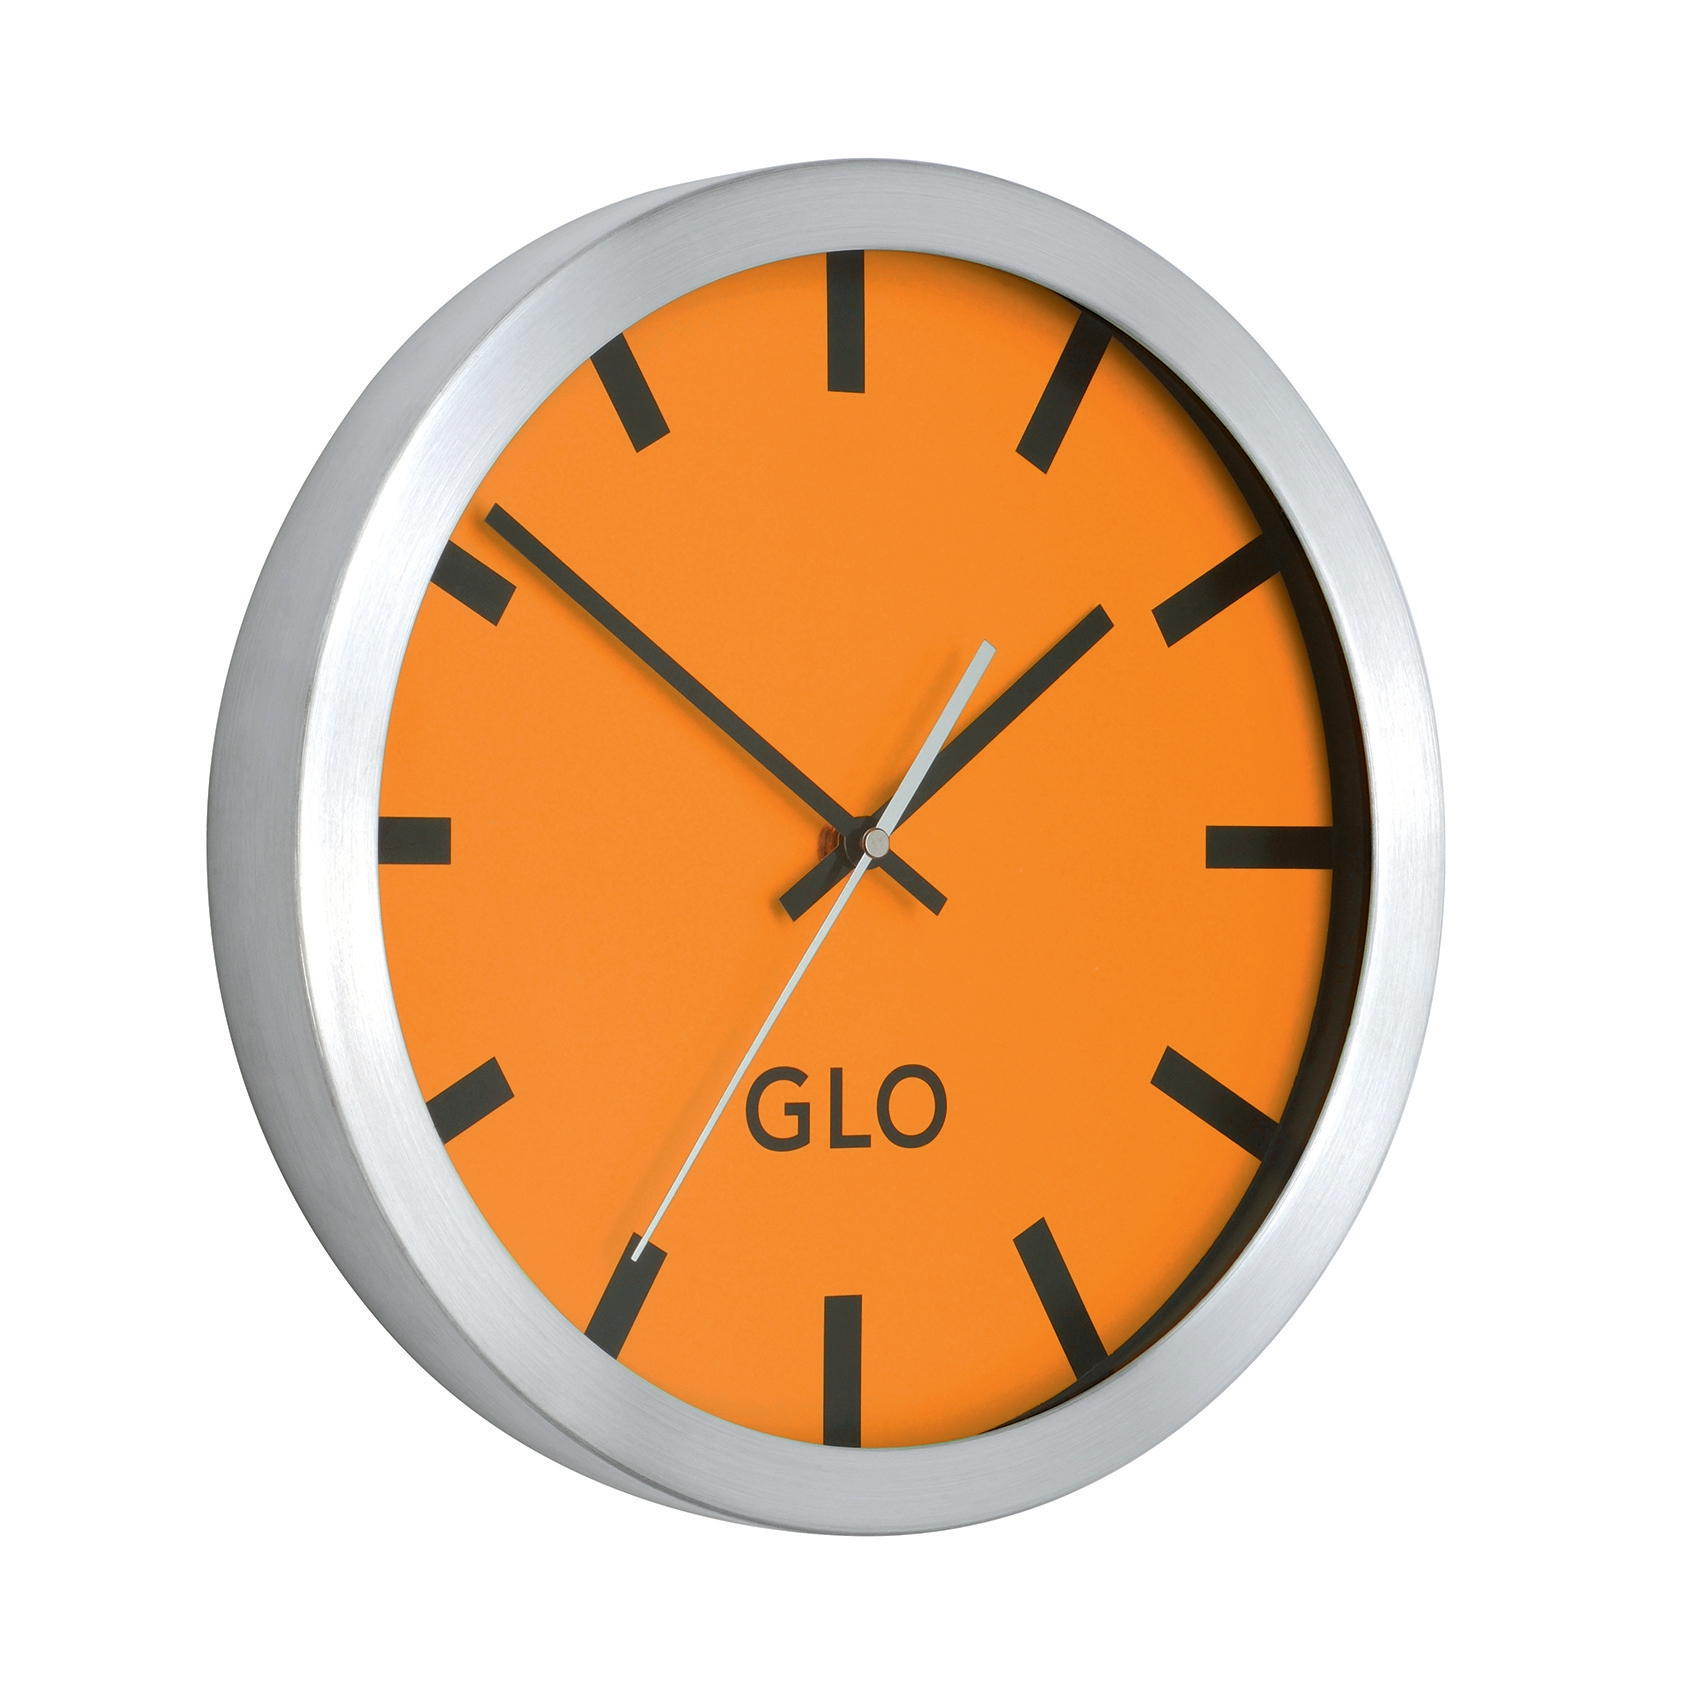 GLO Aluminium Clock Orange Face